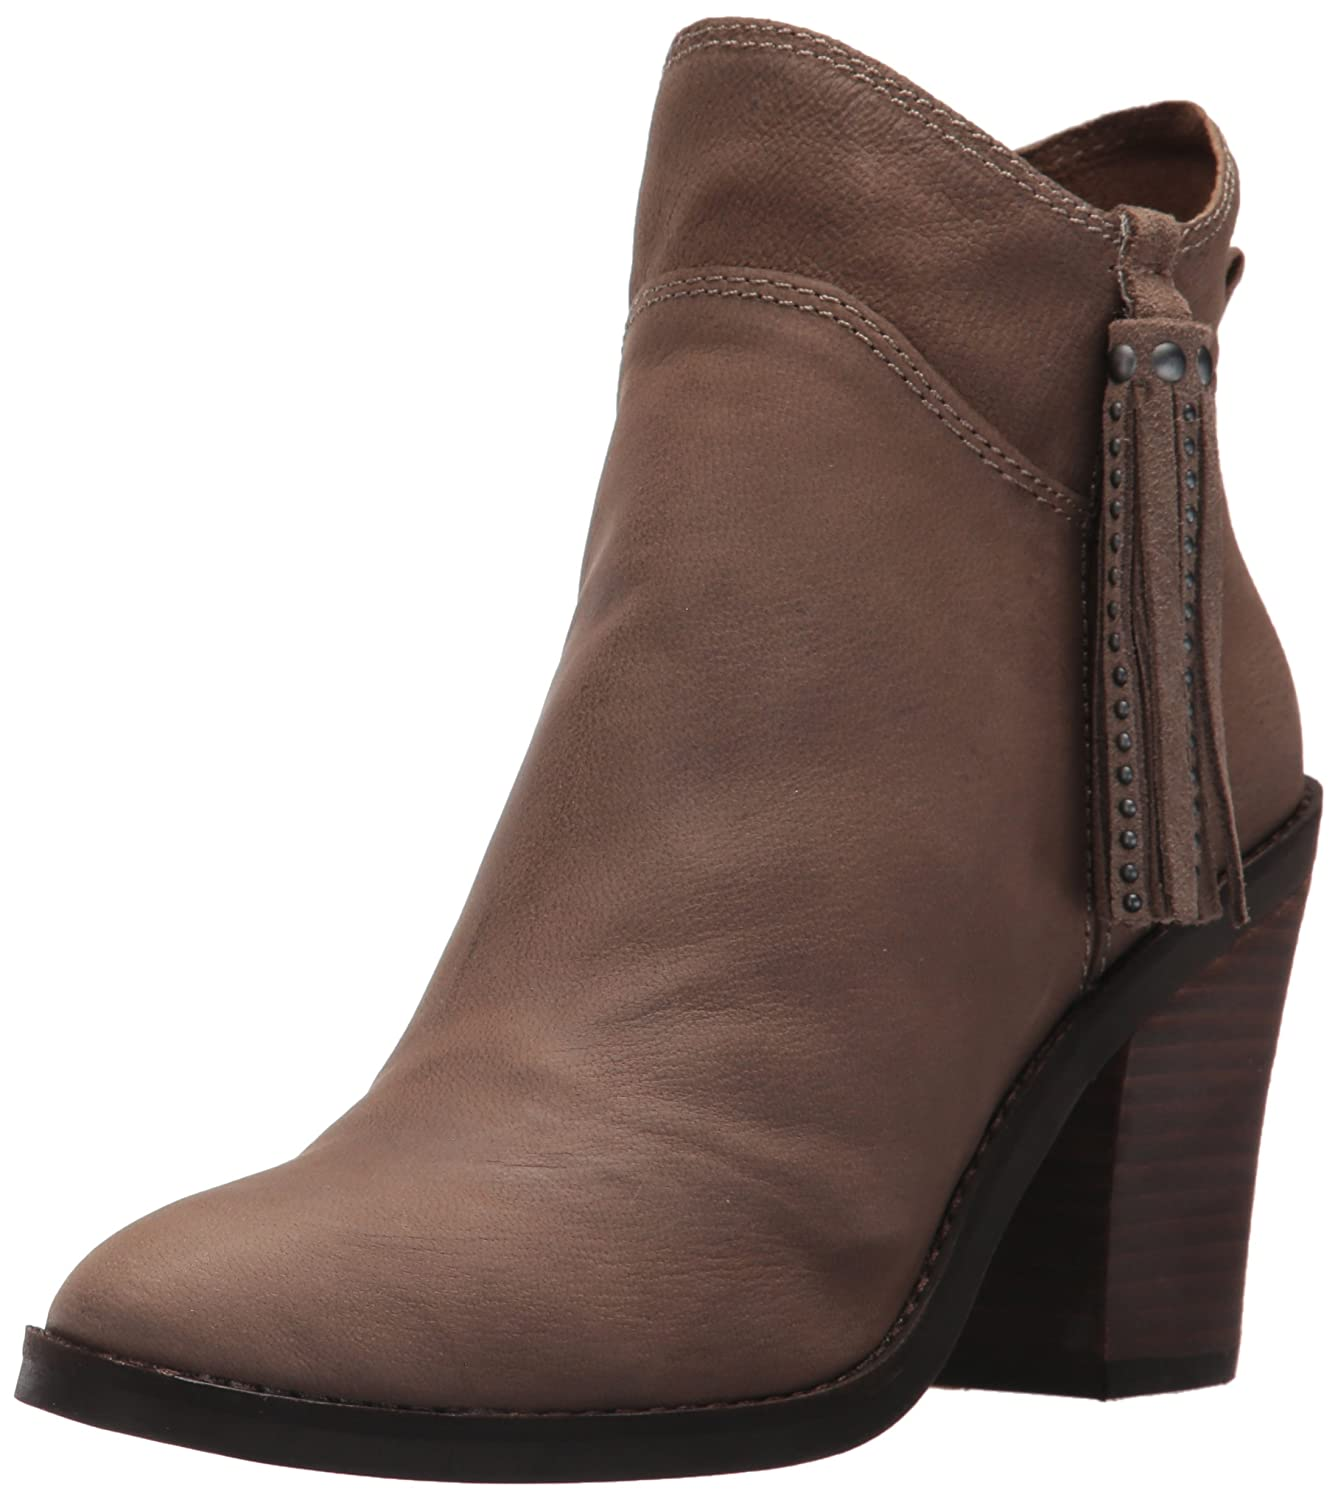 Lucky Brand Women's Pavel Ankle Boot B071R3TN5Z 5.5 M US|Brindle